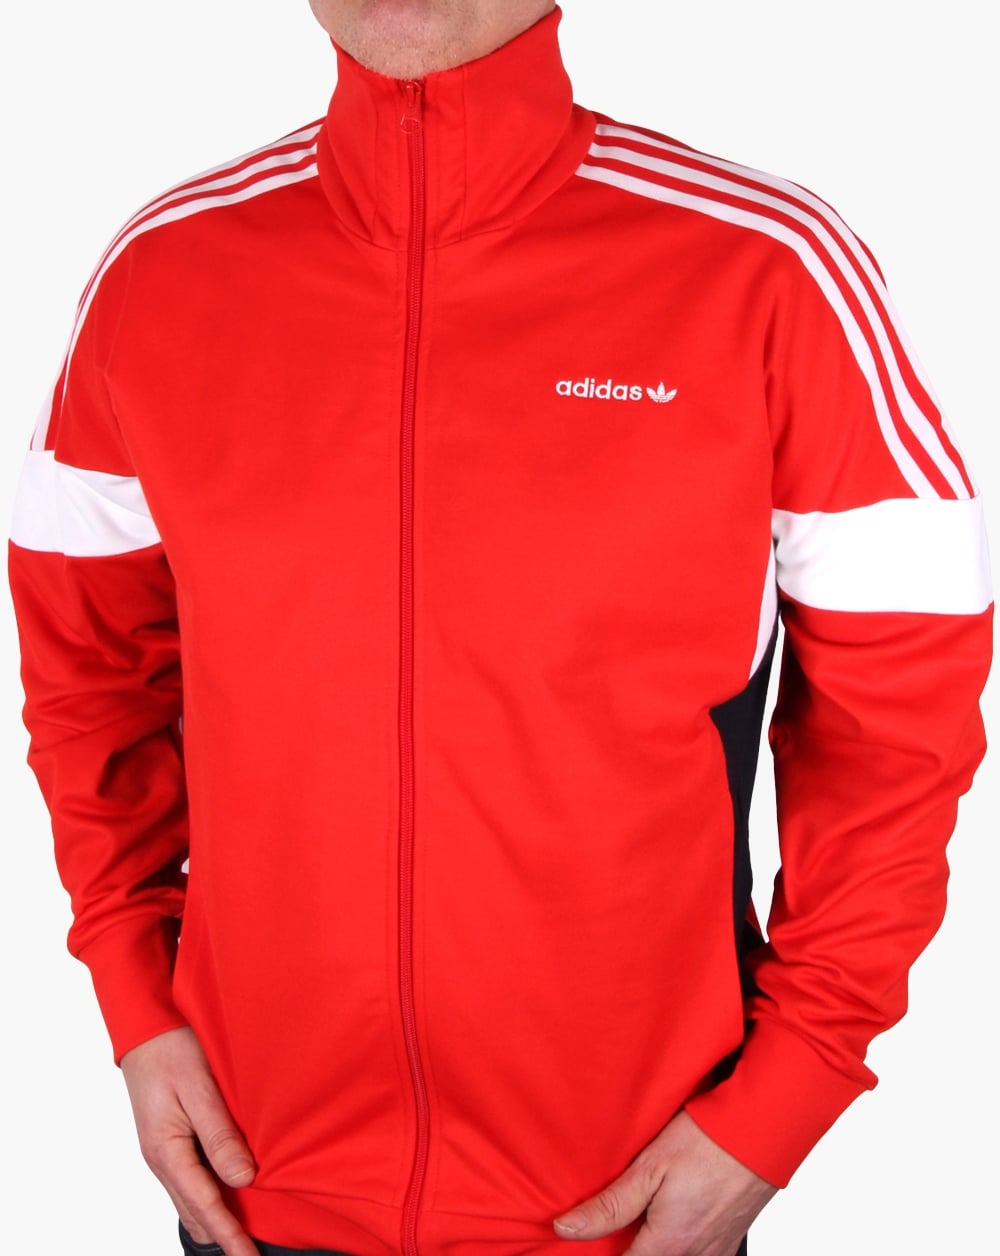 Adidas Originals Clr84 Track Top Core Red